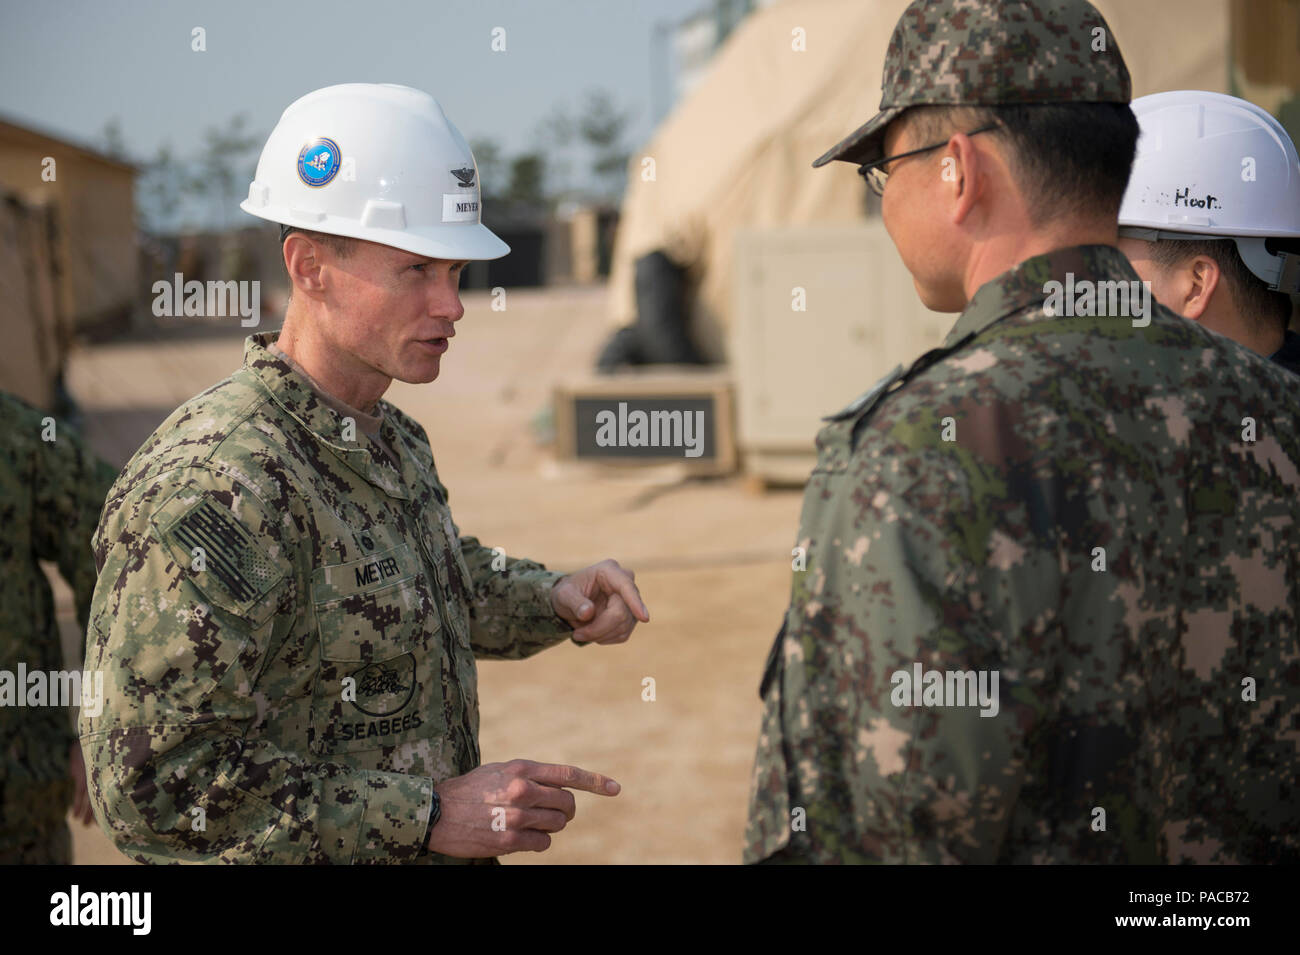 160314-N-HA376-039 BUSAN, Republic of Korea (March 14, 2016) - U.S. Navy Capt. James Meyer, commodore, 30th Naval Construction Regiment (30 NCR), speaks with Republic of Korea (ROK) Navy Cmdr. Lee Young Suk during a tour of a joint U.S. and ROK construction site during exercise Foal Eagle 2016. 30 NCR is forward deployed to provide command and control of U.S. Navy Seabees working with their ROK counterparts during Foal Eagle. Foal Eagle is an annual, bilateral training exercise designed to enhance the readiness of U.S. and ROK forces, and their ability to work together during a crisis. (U.S. N - Stock Image